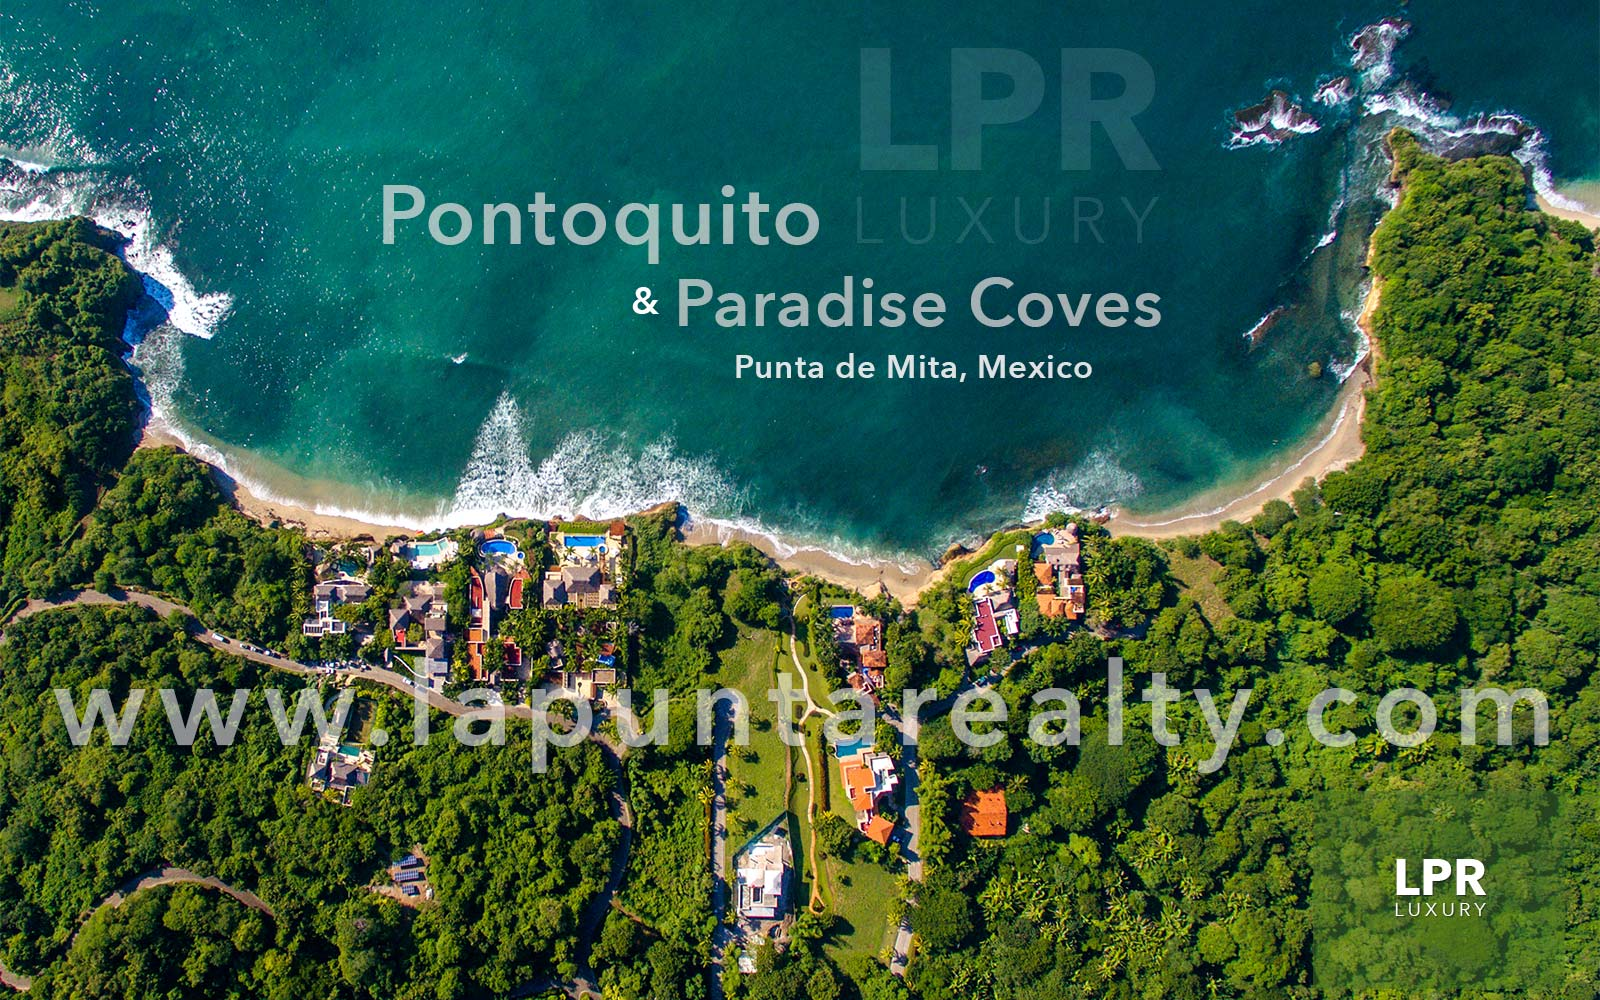 Pontoquito and Paradise Coves - Luxury Punta de Mita Real Estate